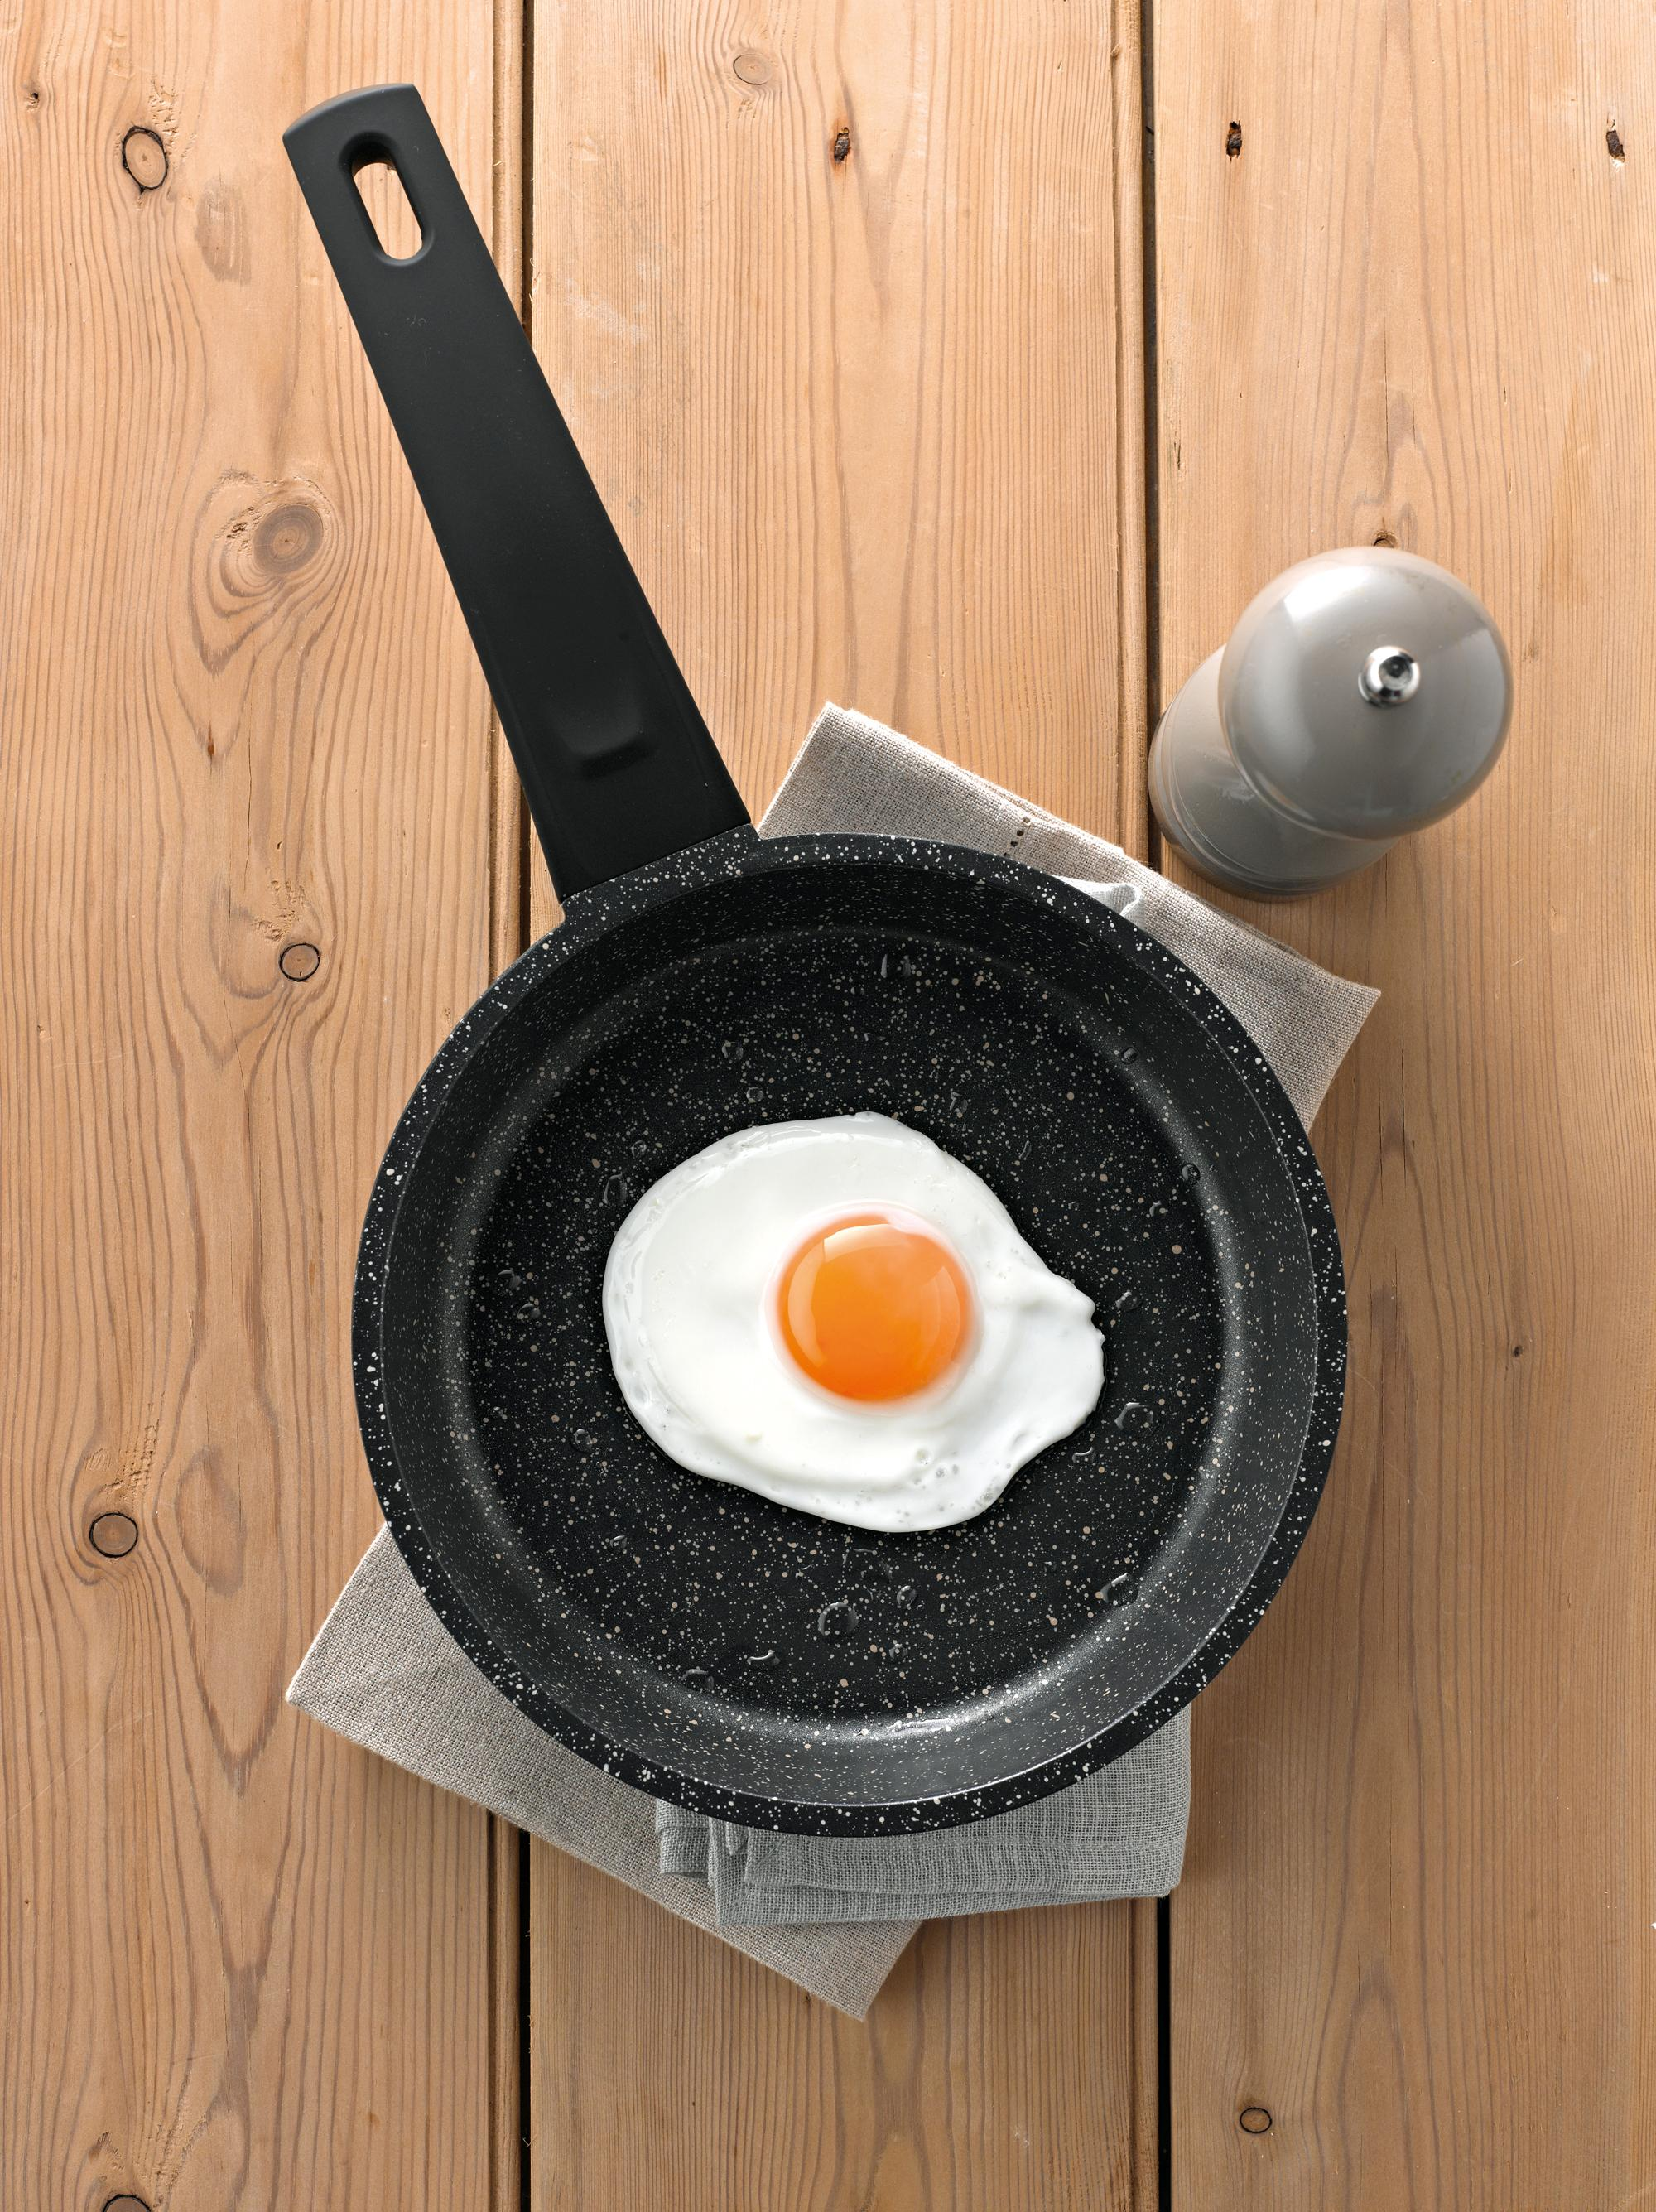 Prestige Stone Quartz 24 Cm Skillet Black Amazon Co Uk